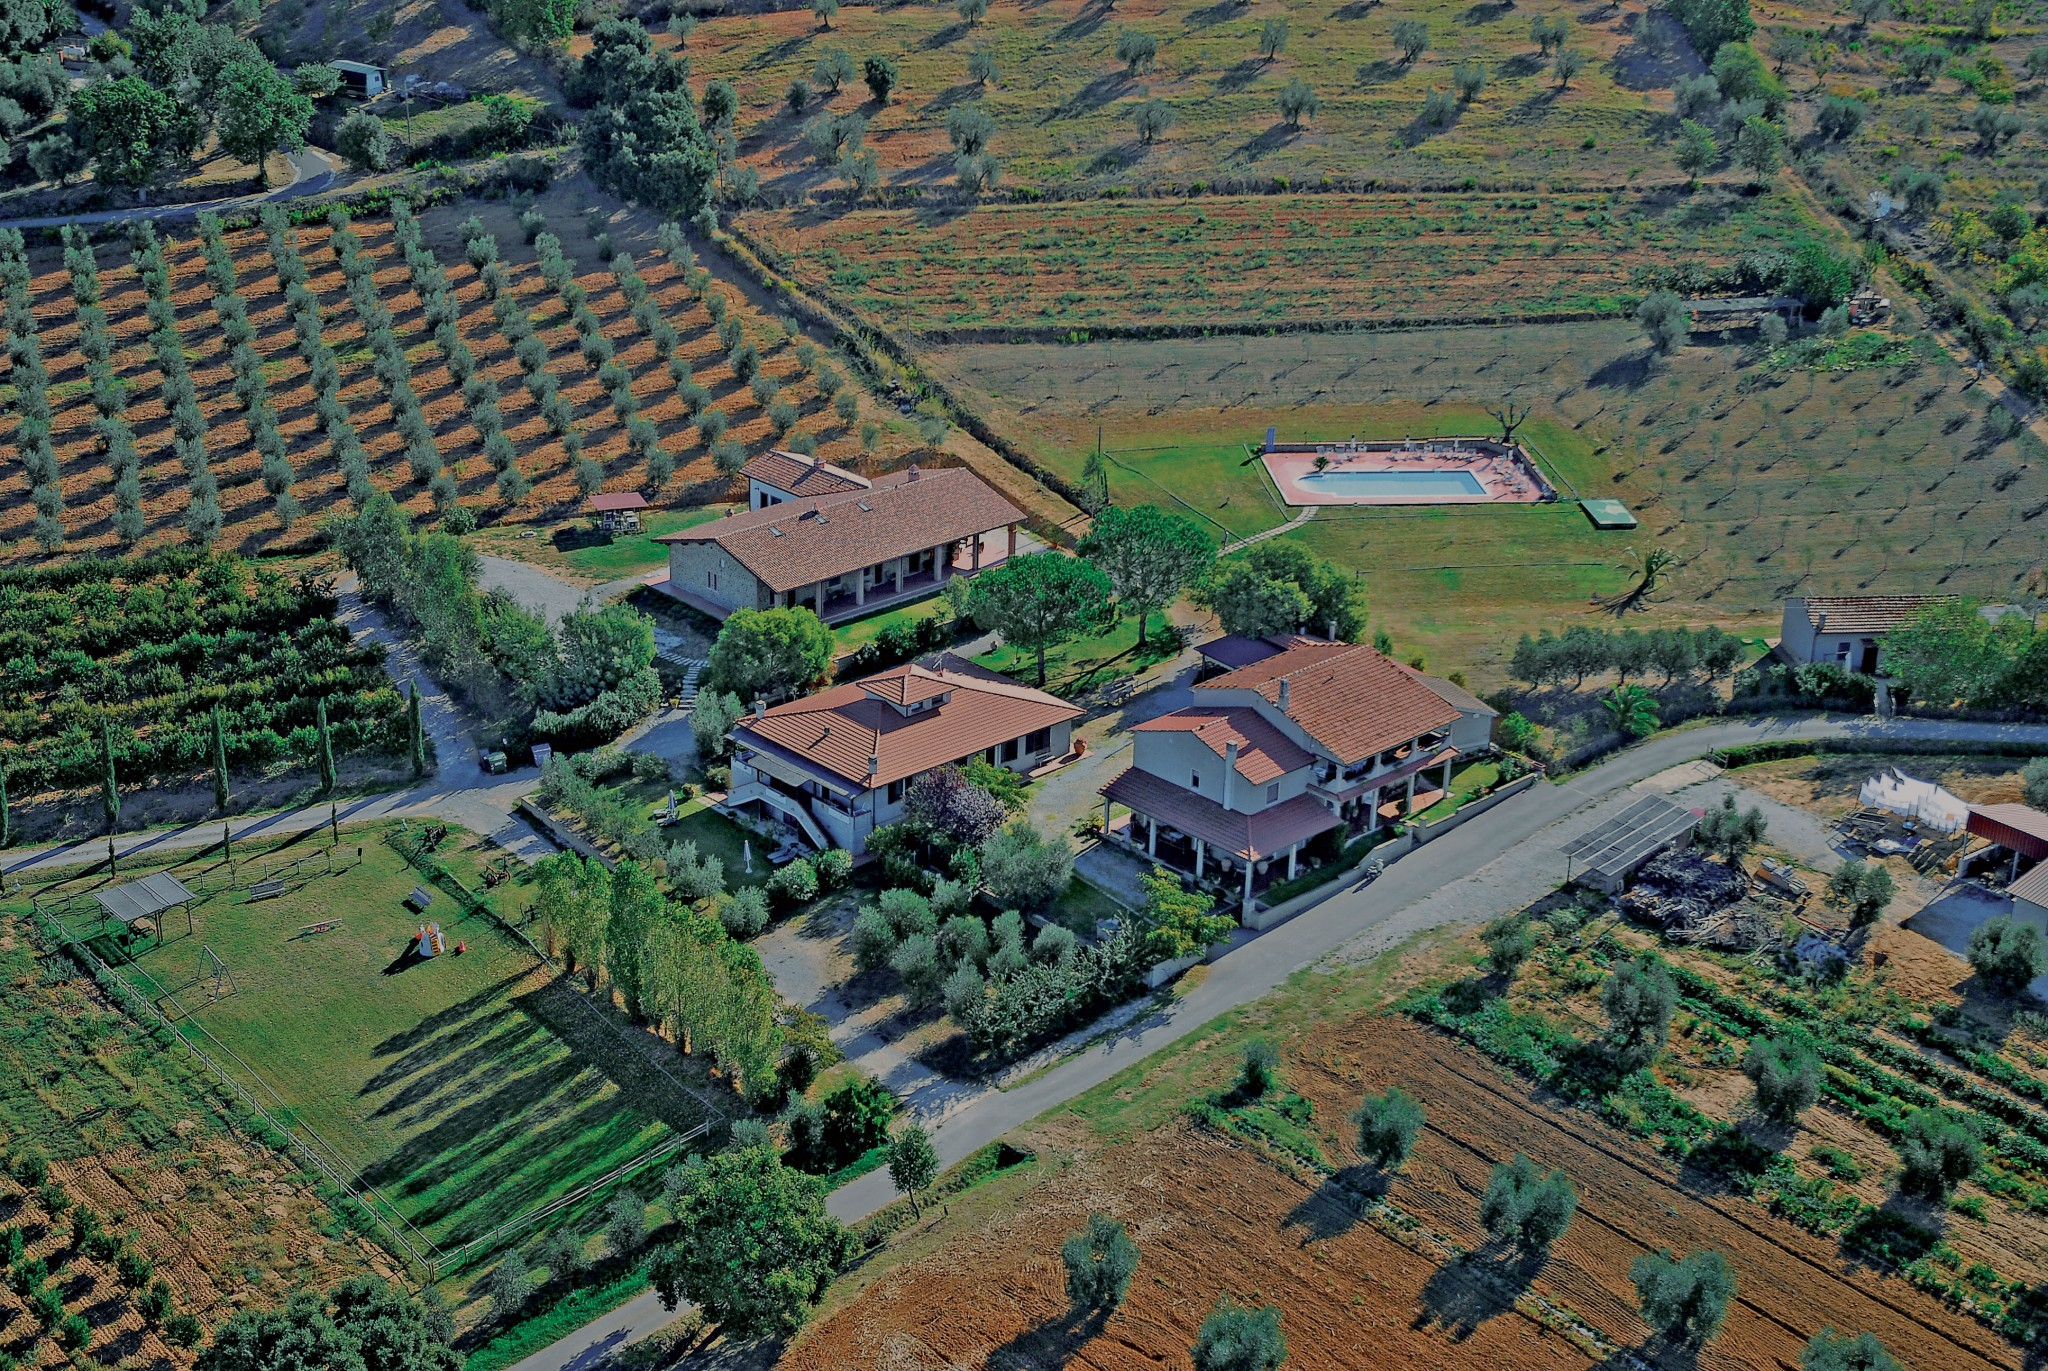 AGRITURISMO SCARLINO FOLLONICA